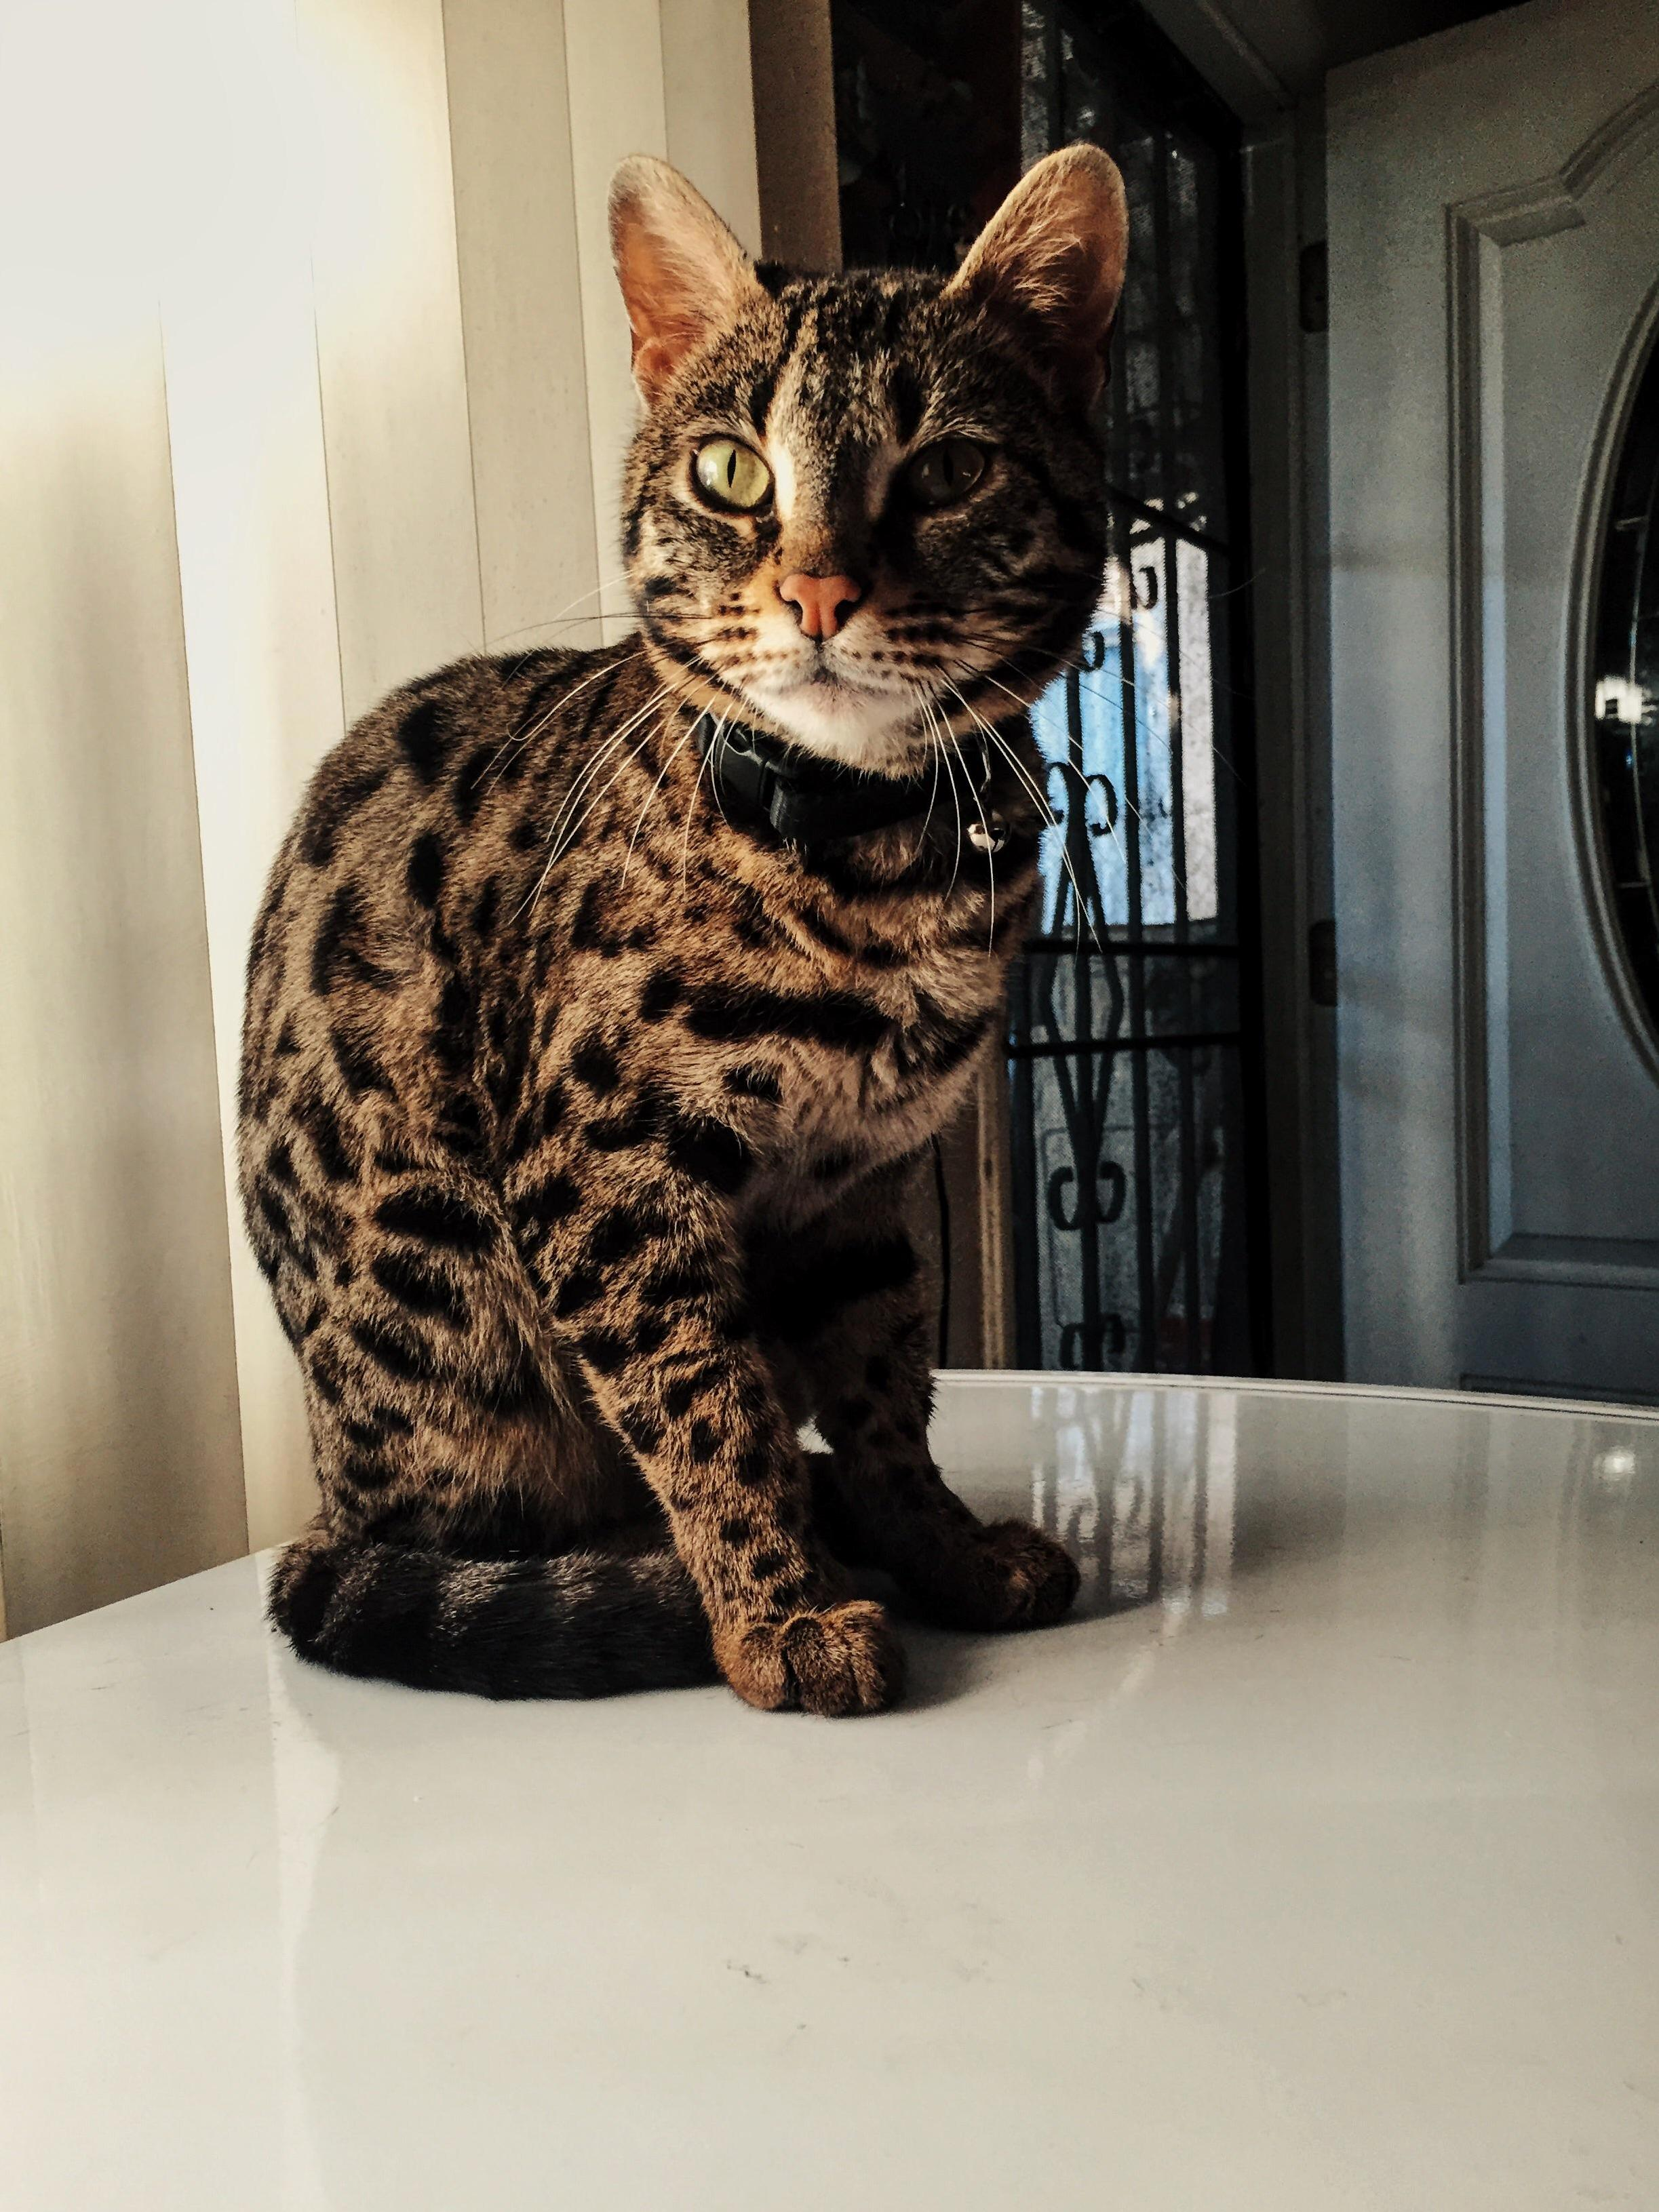 This is pepper my f1 bengal